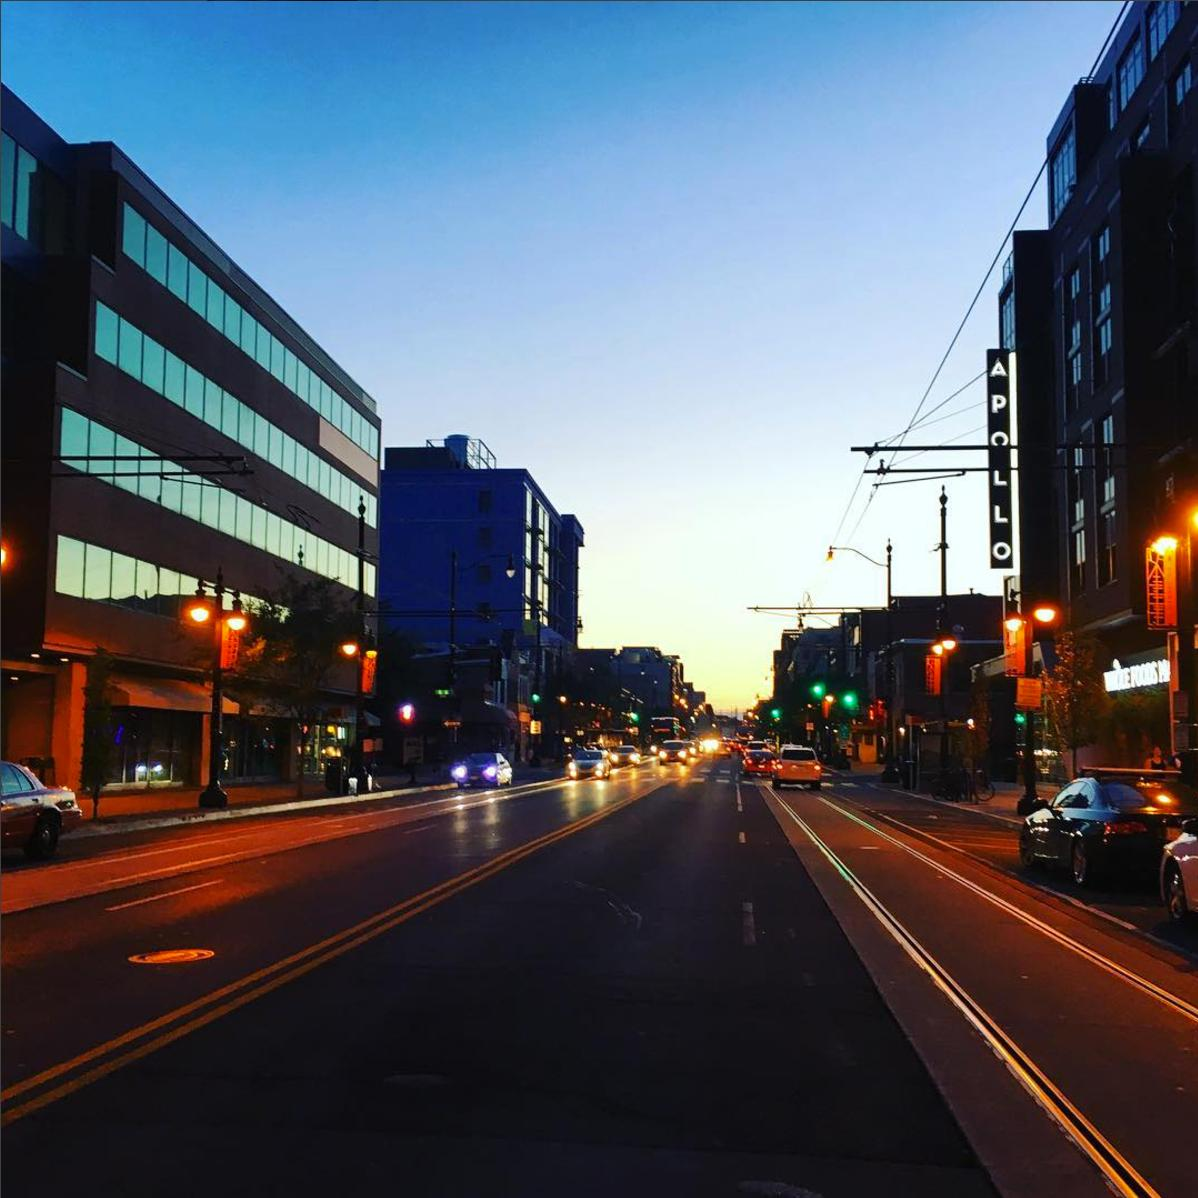 H Street has been experiencing some major development lately, but it hasn't lost its charm and unique vibe. (Image via @clarkmorris)